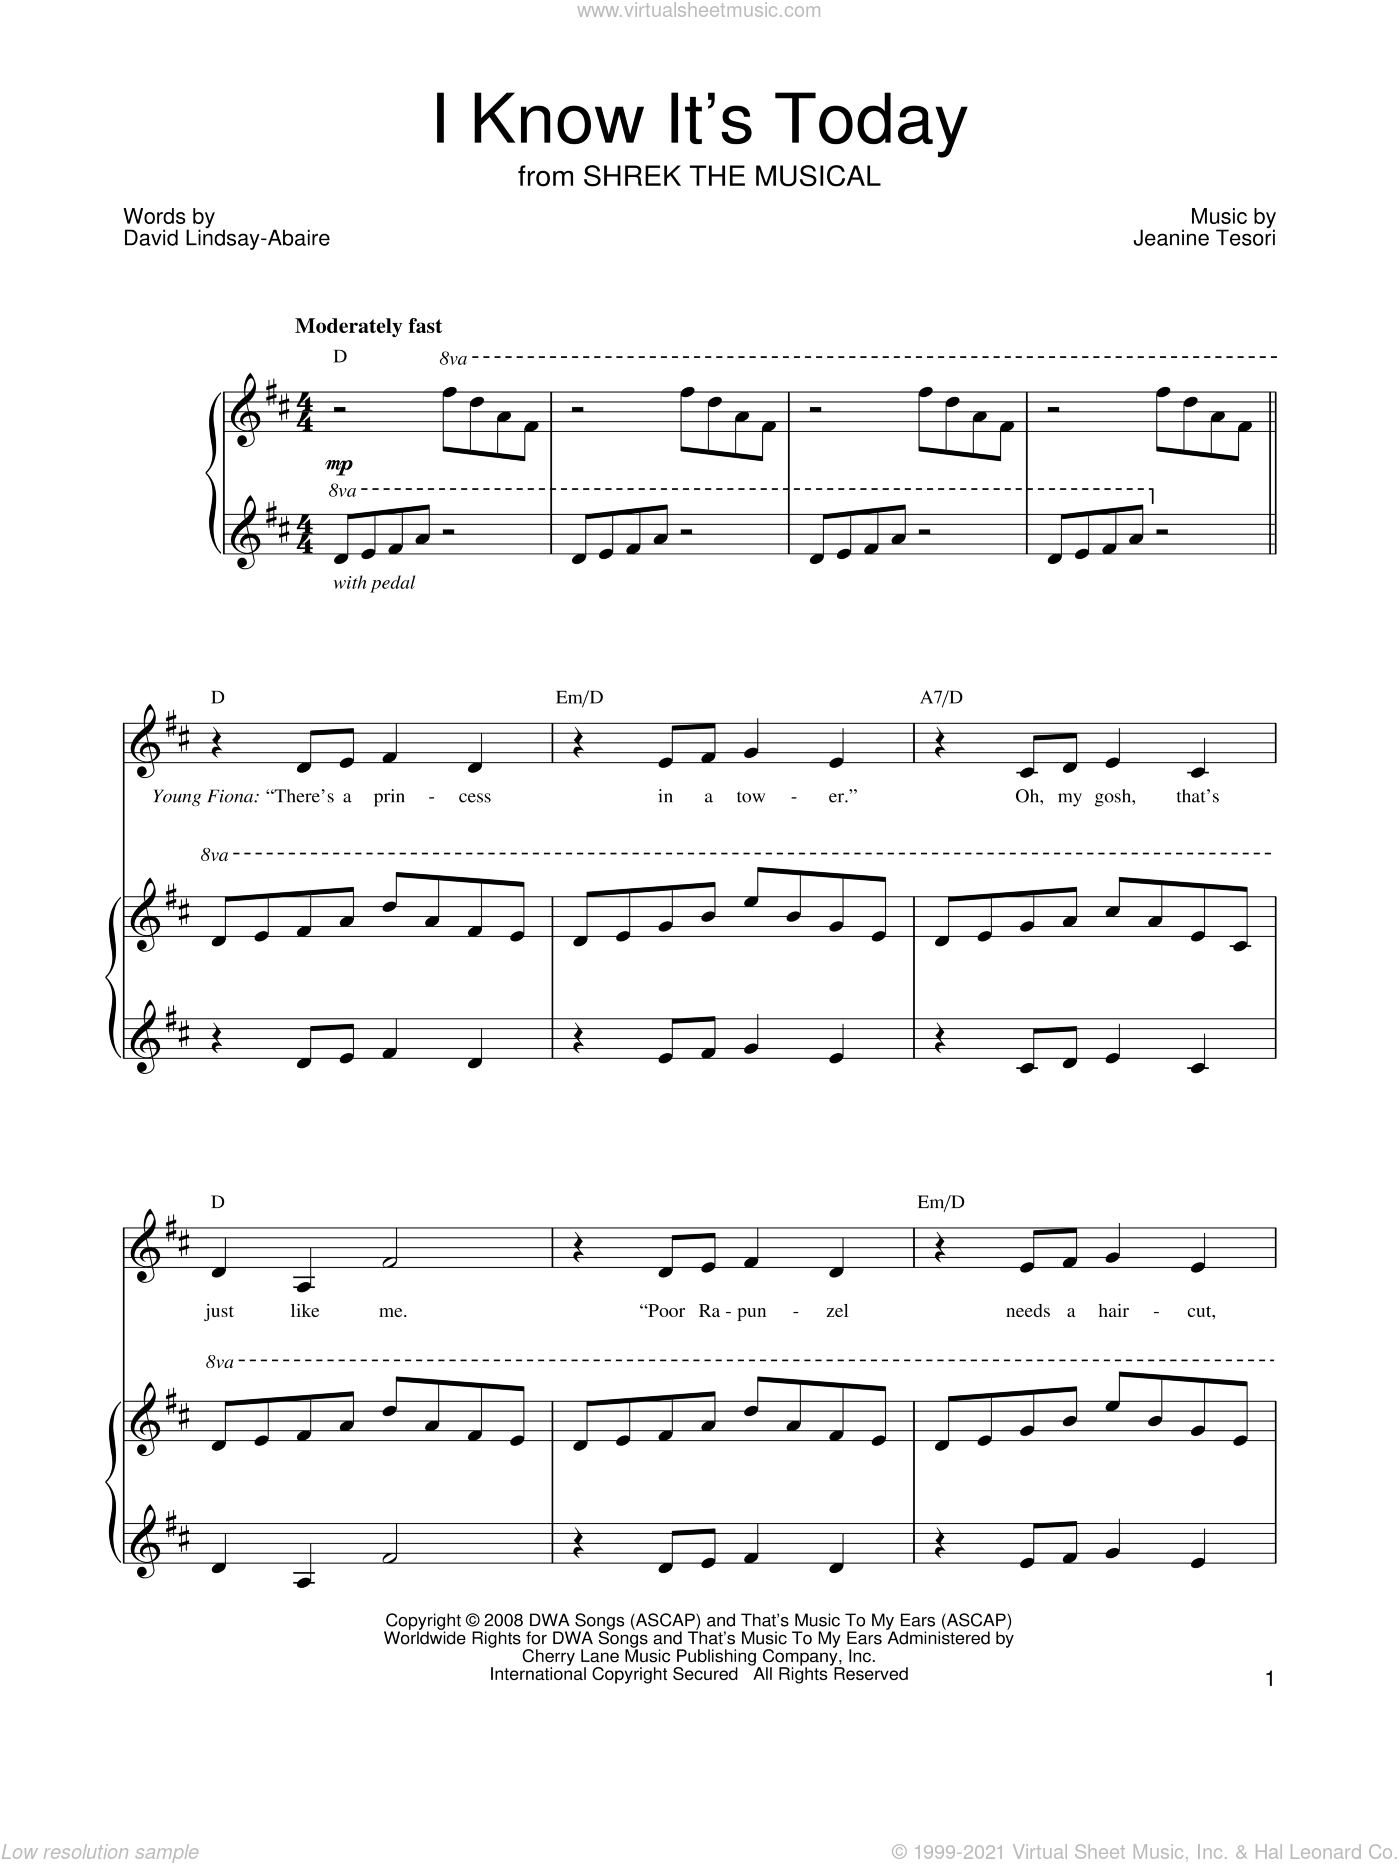 I Know It's Today sheet music for voice, piano or guitar by Jeanine Tesori